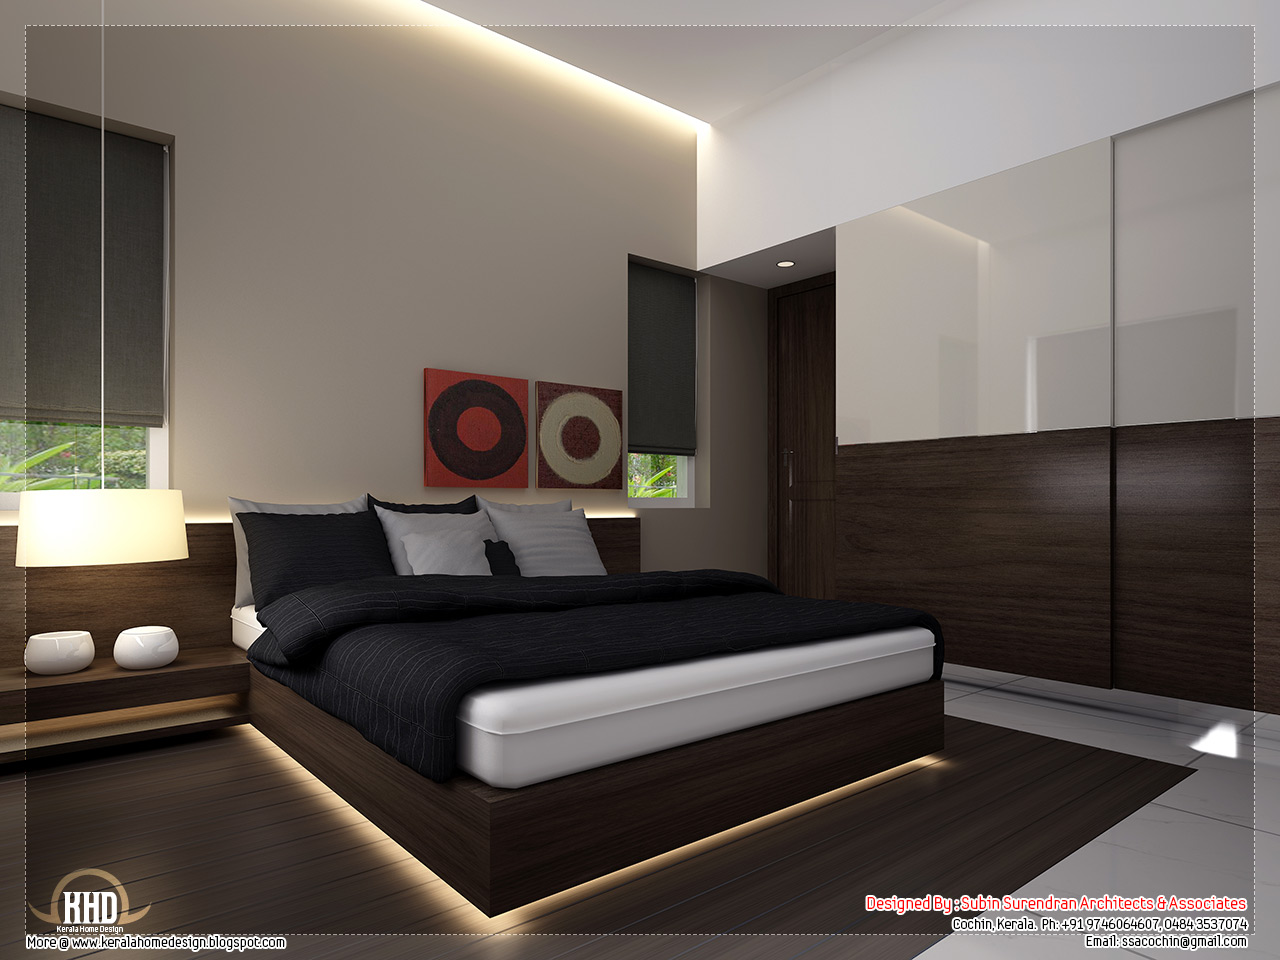 Beautiful home interior designs kerala home design and for Bed interior design picture